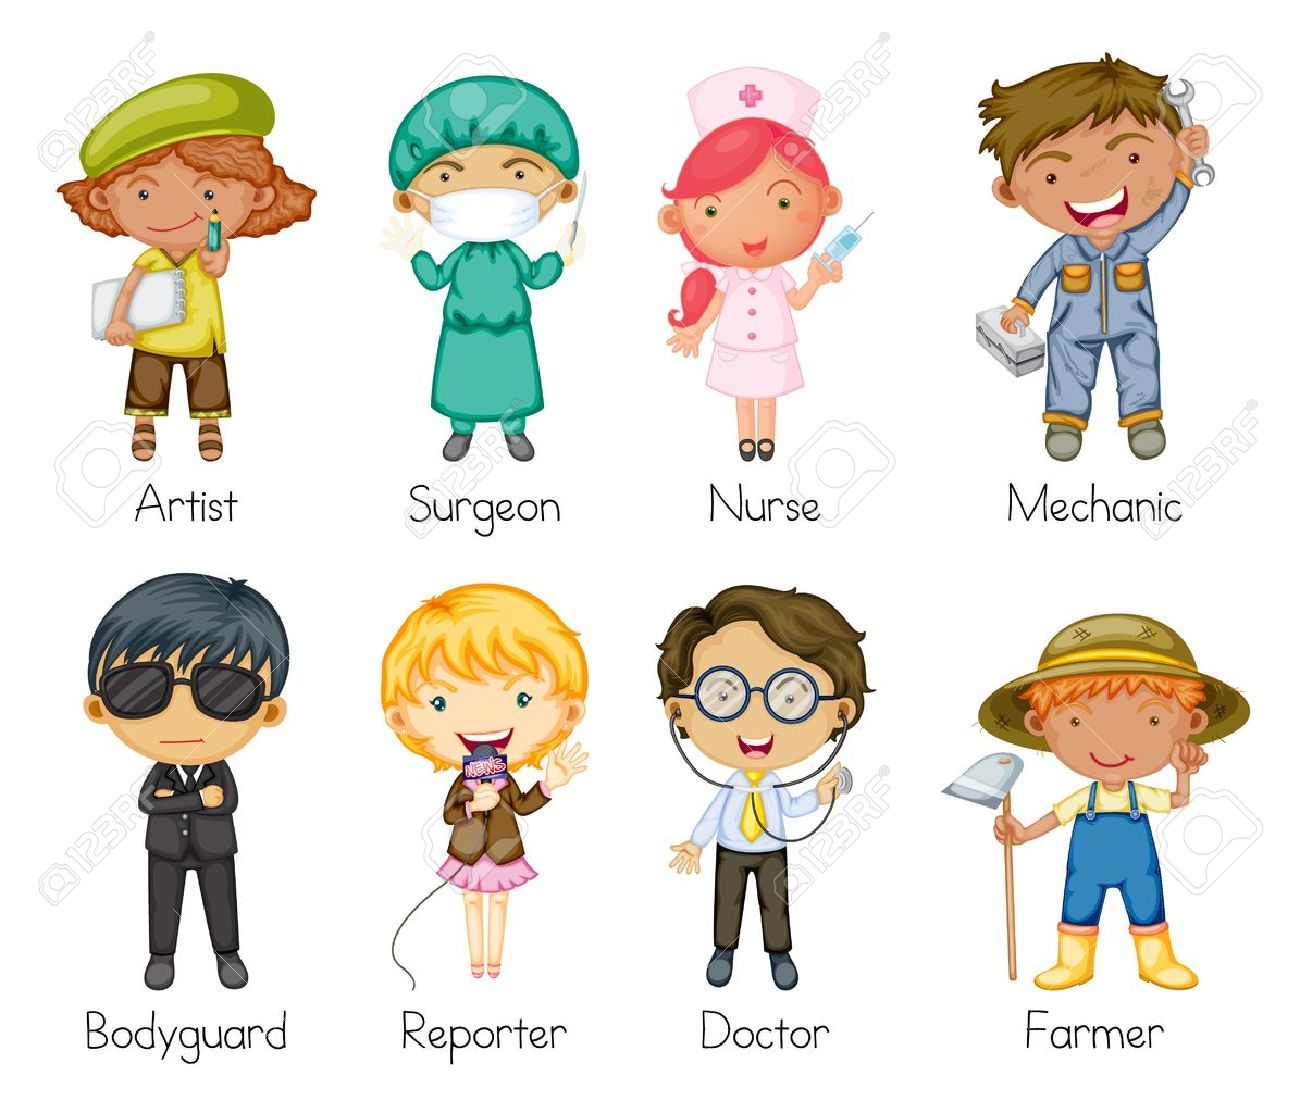 illustration of a jobs and professions royalty free cliparts rh 123rf com jobs clipart images jobs clipart black and white